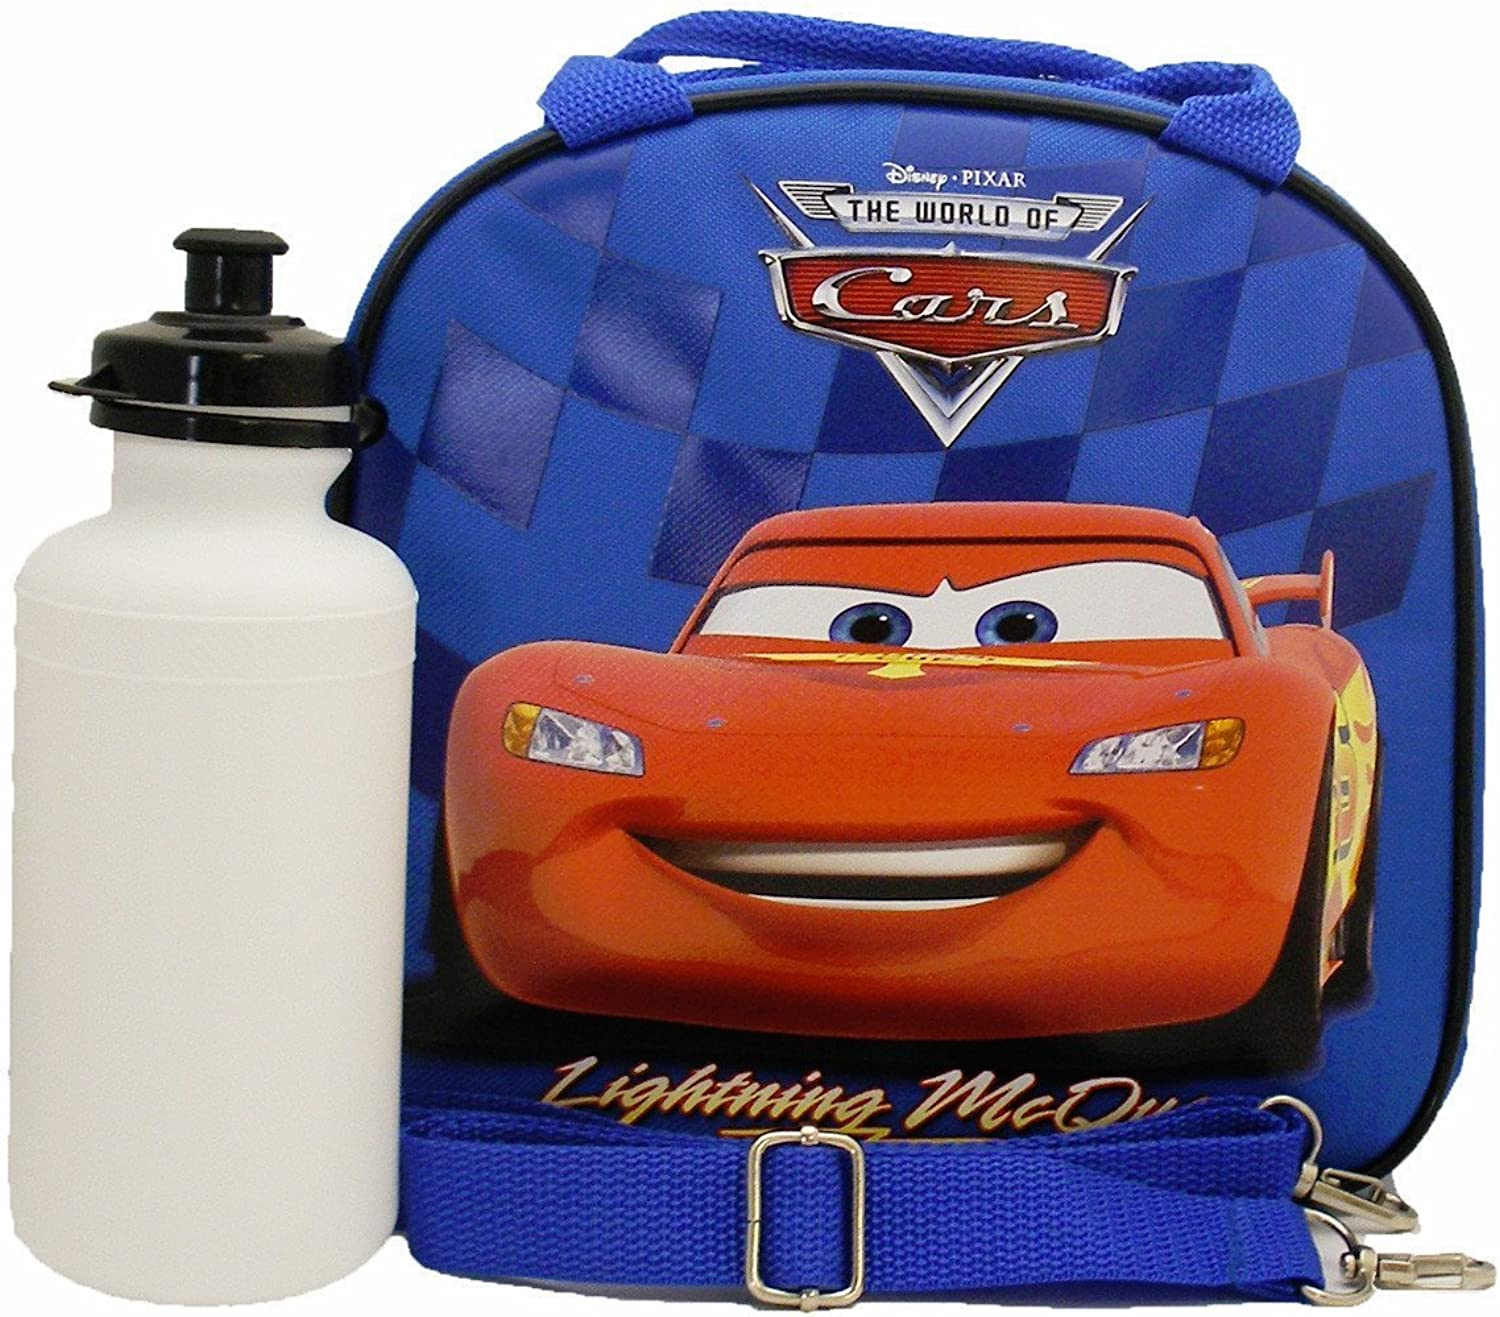 Disney Cars Lunch Box with Water Bottle by Disney